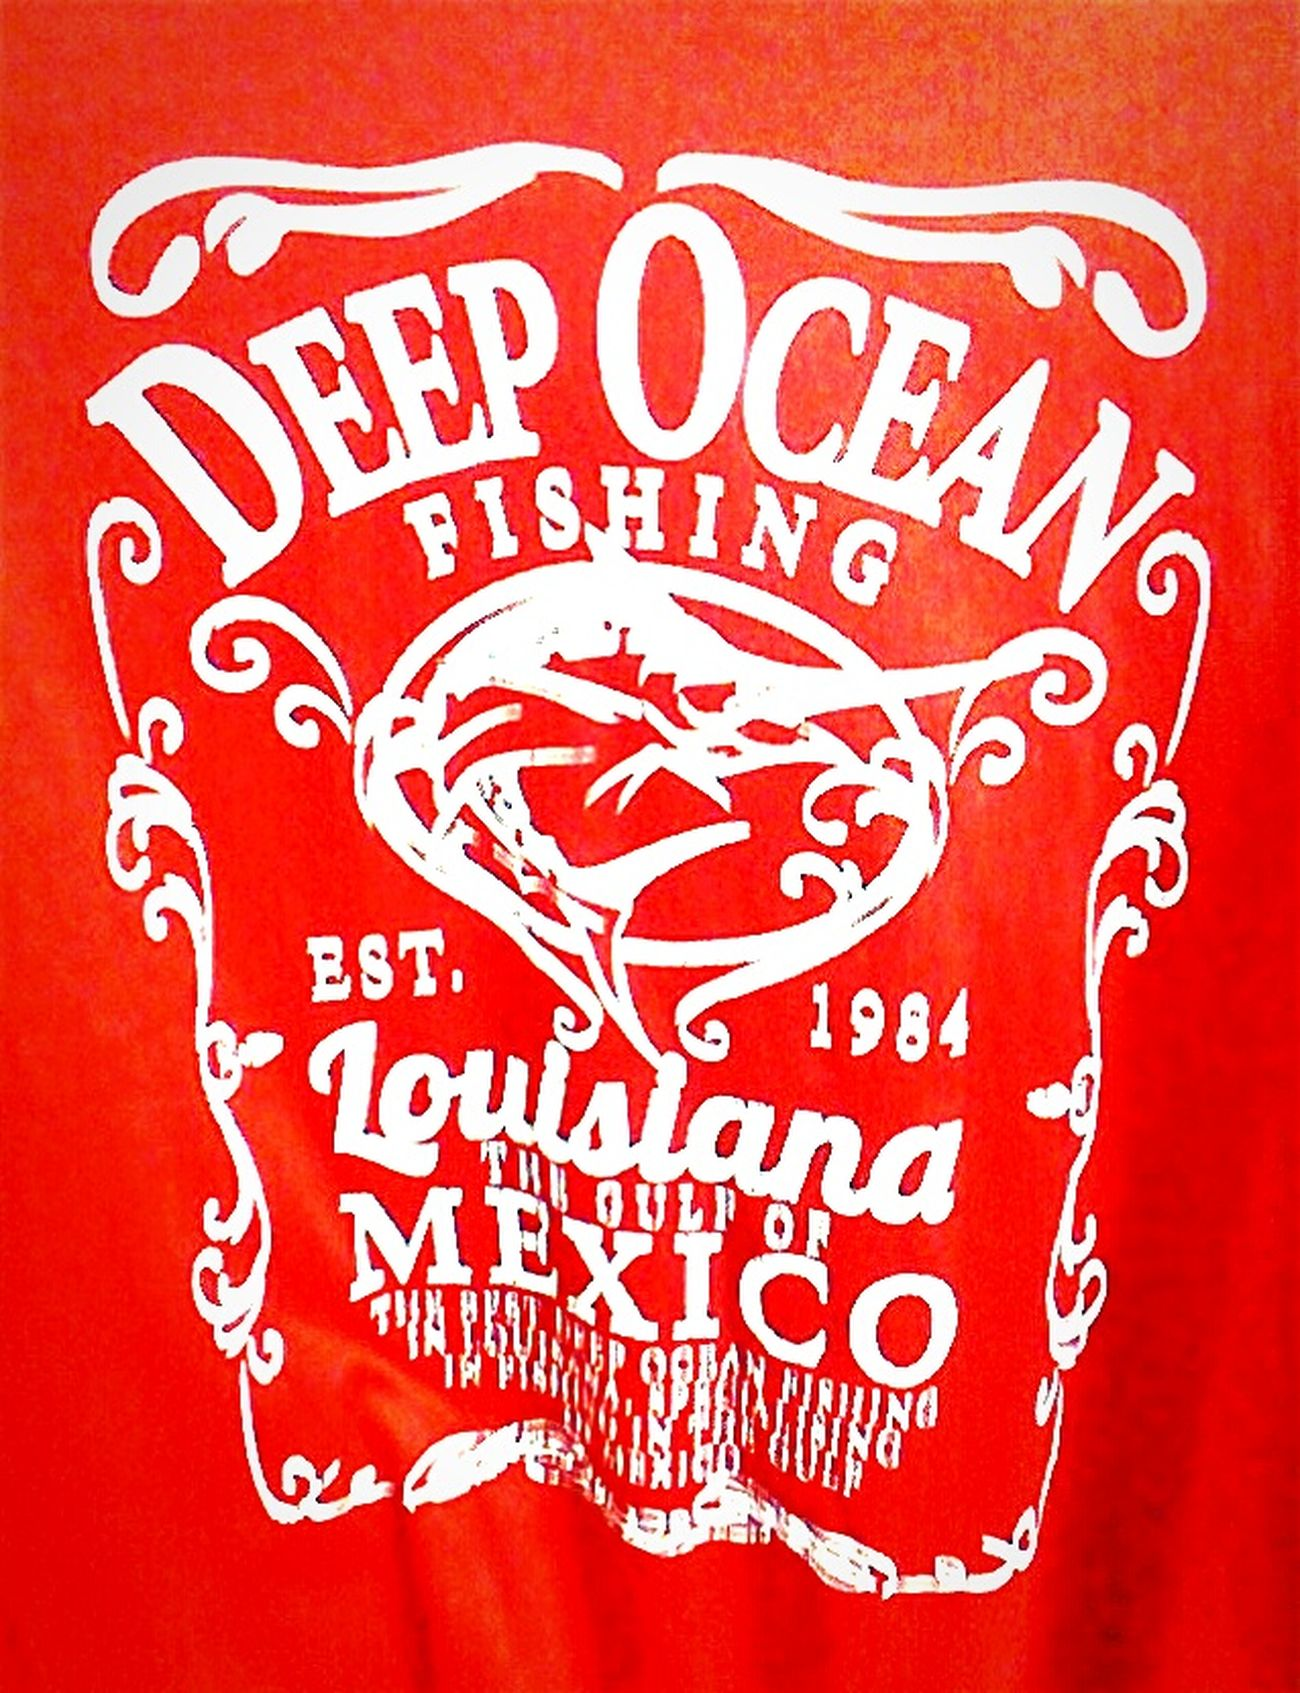 Deep Ocean Fishing In The Gulf Of Mexico Tshirts T_shirt Tshirt Tee Shirt T Shirts Red And White Fishing Time T Shirt Collection T_shirt T Shirt Design Tshirt♡